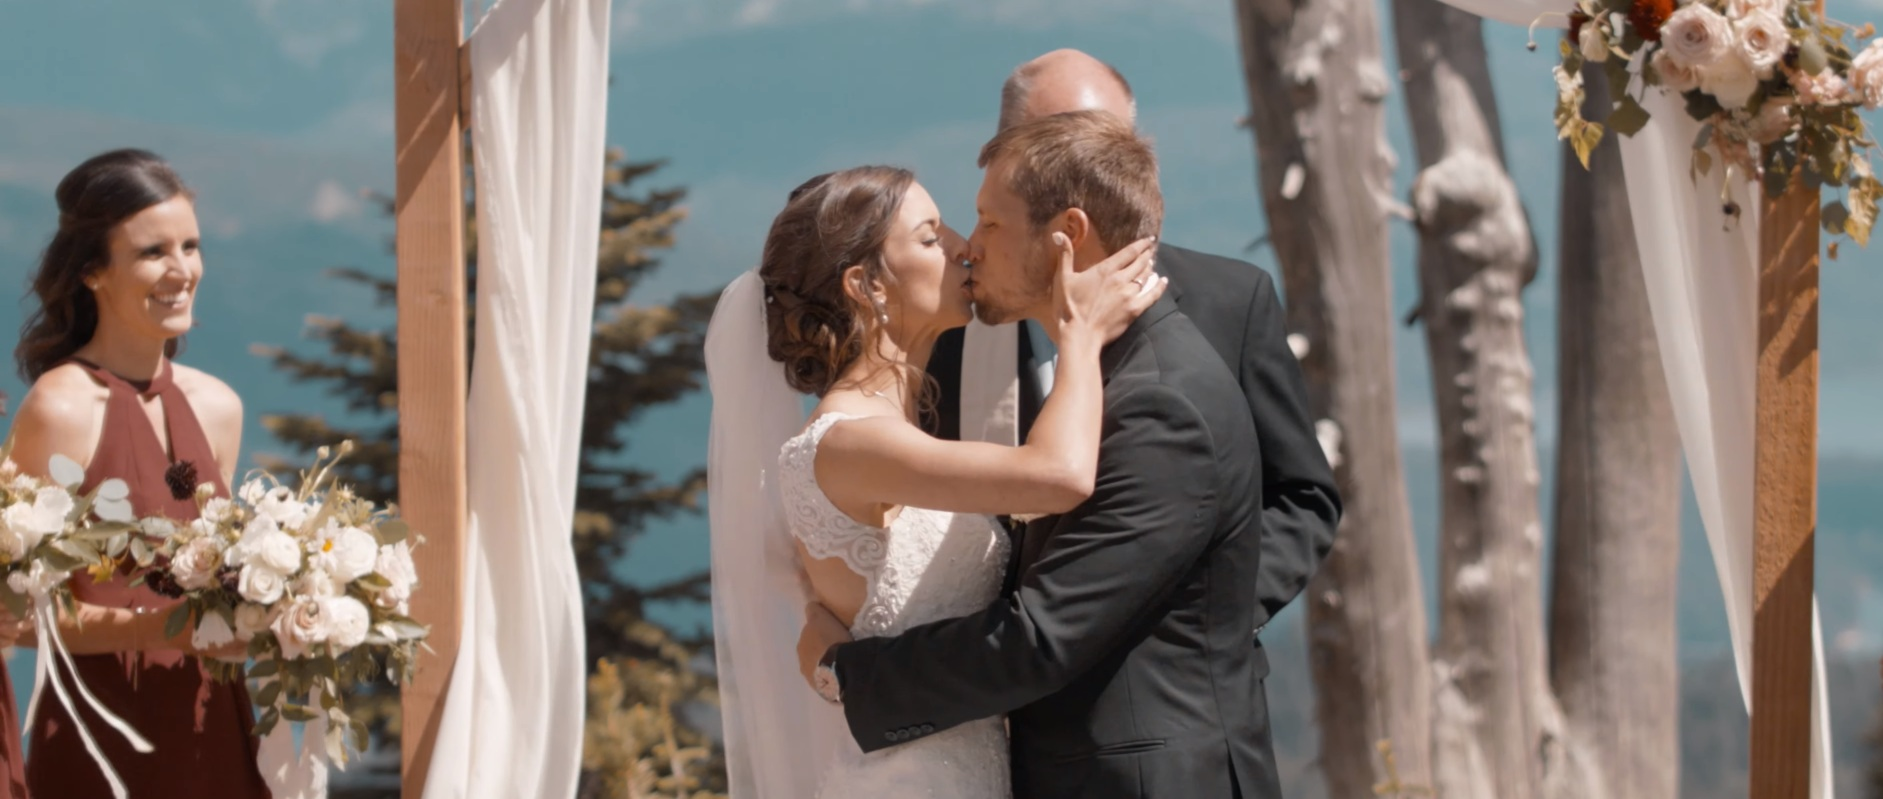 High on the mountain top a fairytale wedding memory was made! Just goes to show you don't need to travel far to have that beautiful destination wedding, some of the most beautiful sites may be hiding in plain site!